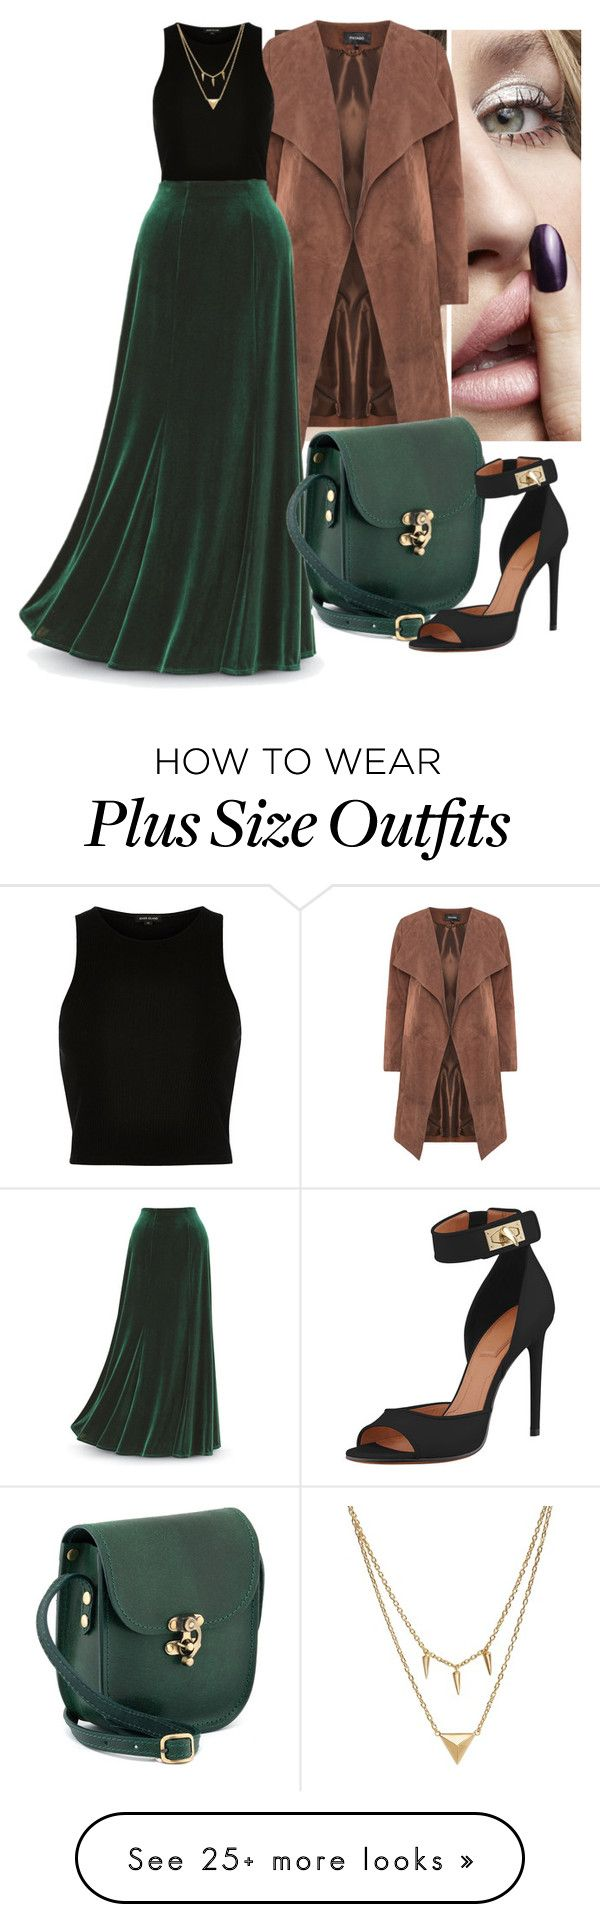 """""""BattyN"""" by grafonski on Polyvore featuring River Island, Givenchy, Edge of Ember, women's clothing, women, female, woman, misses and juniors"""